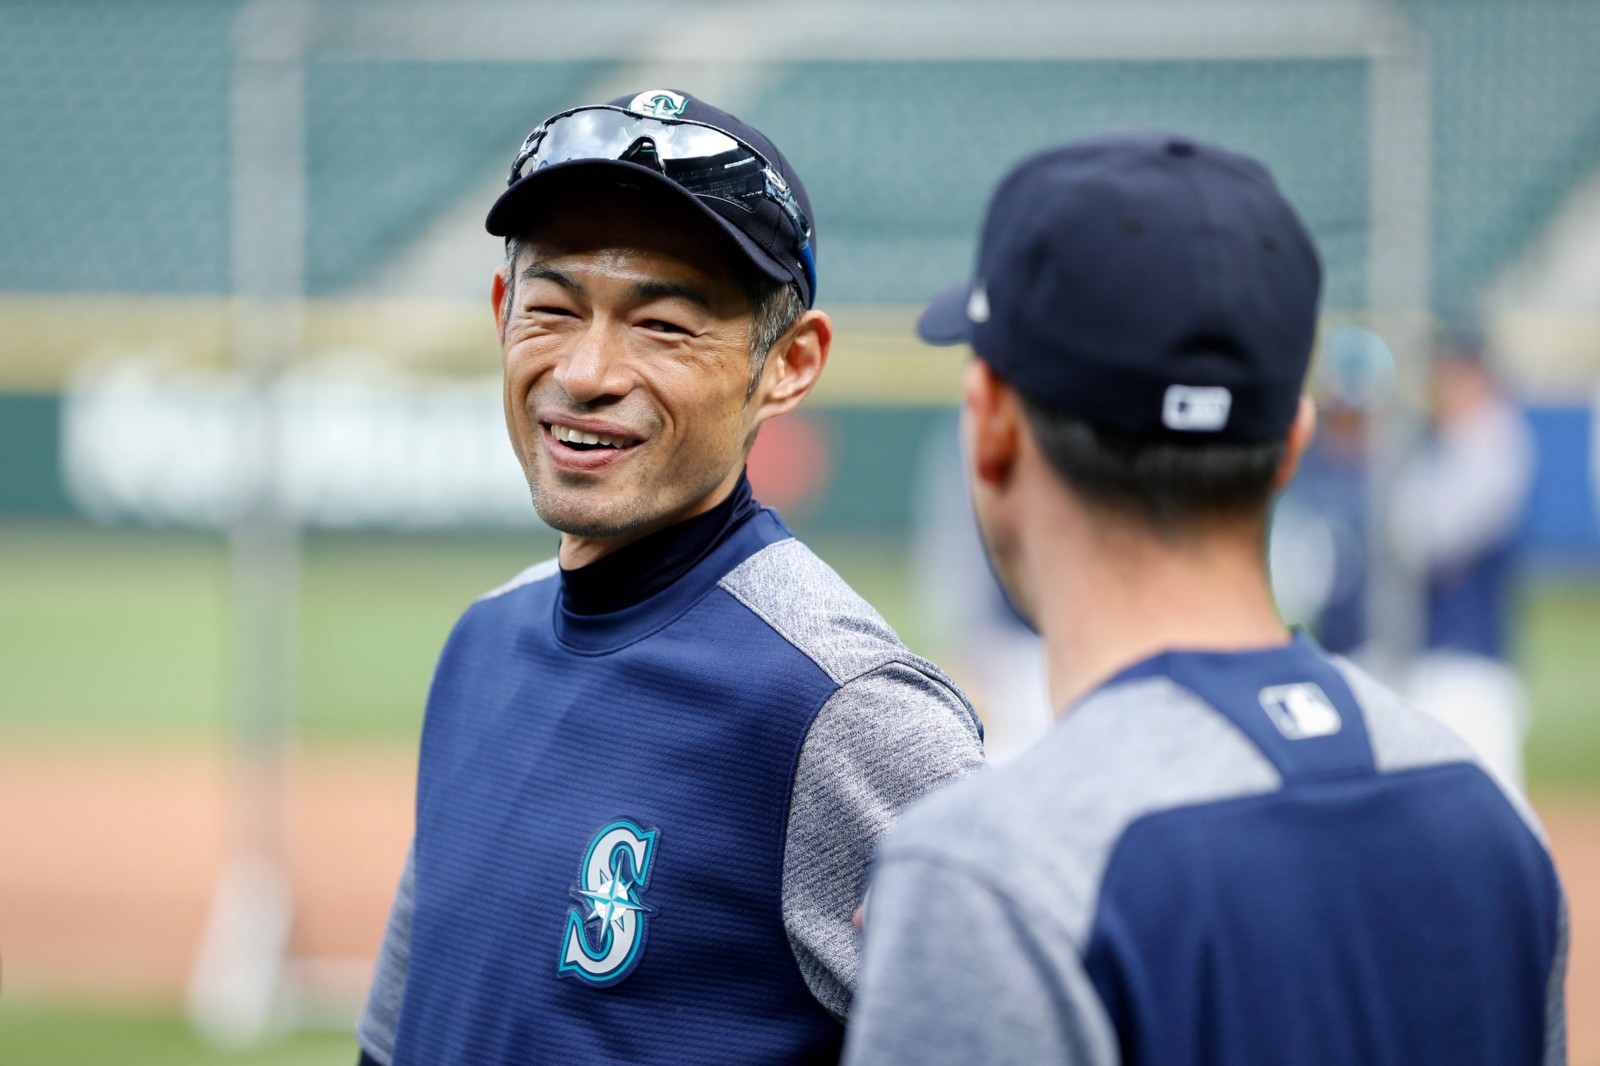 Ichiro: No sense of loss after removed from roster